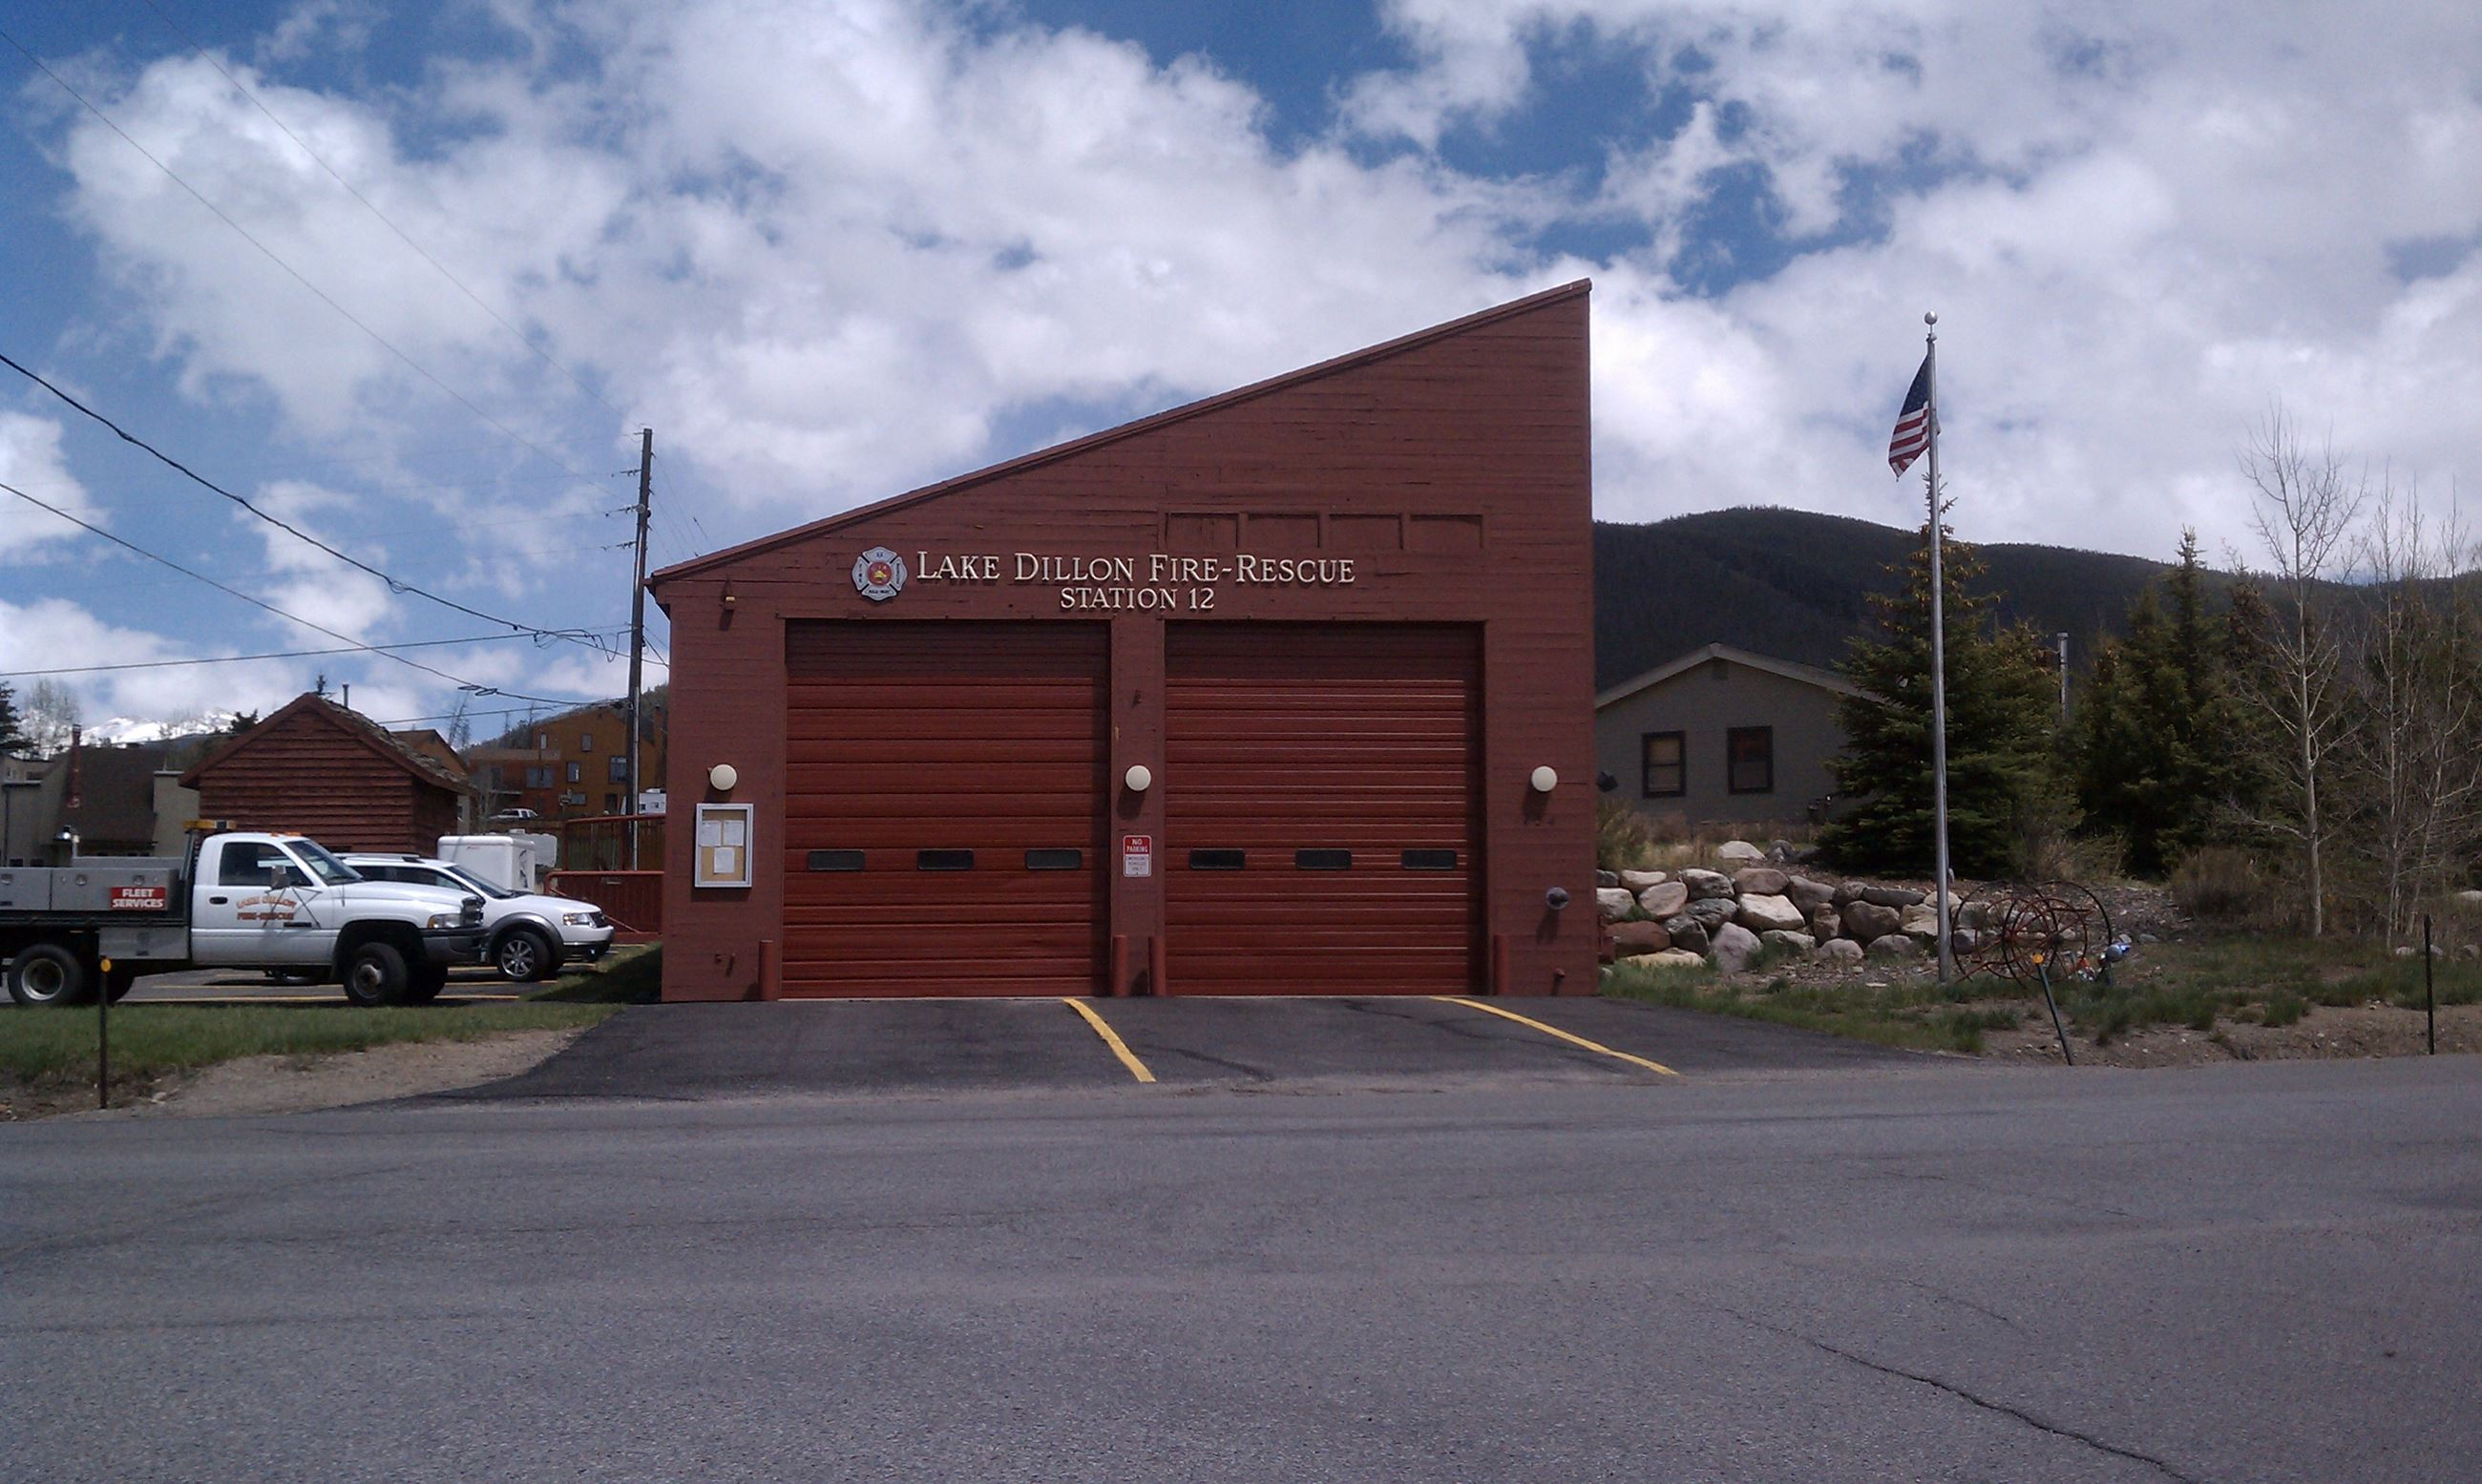 LDFR Station 12